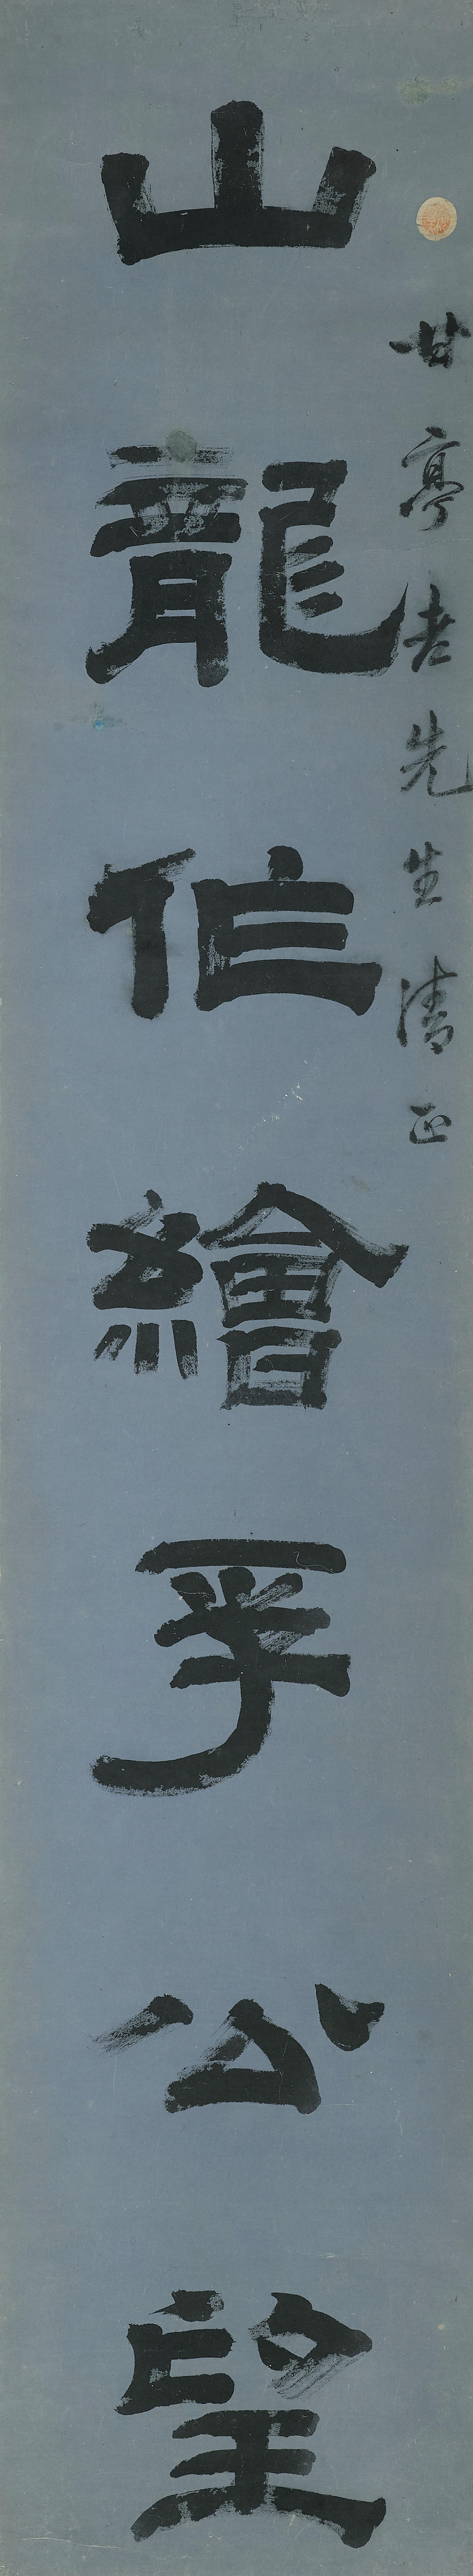 Qian Yong (1759-1844)  Calligraphy Couplet in Clerical Script